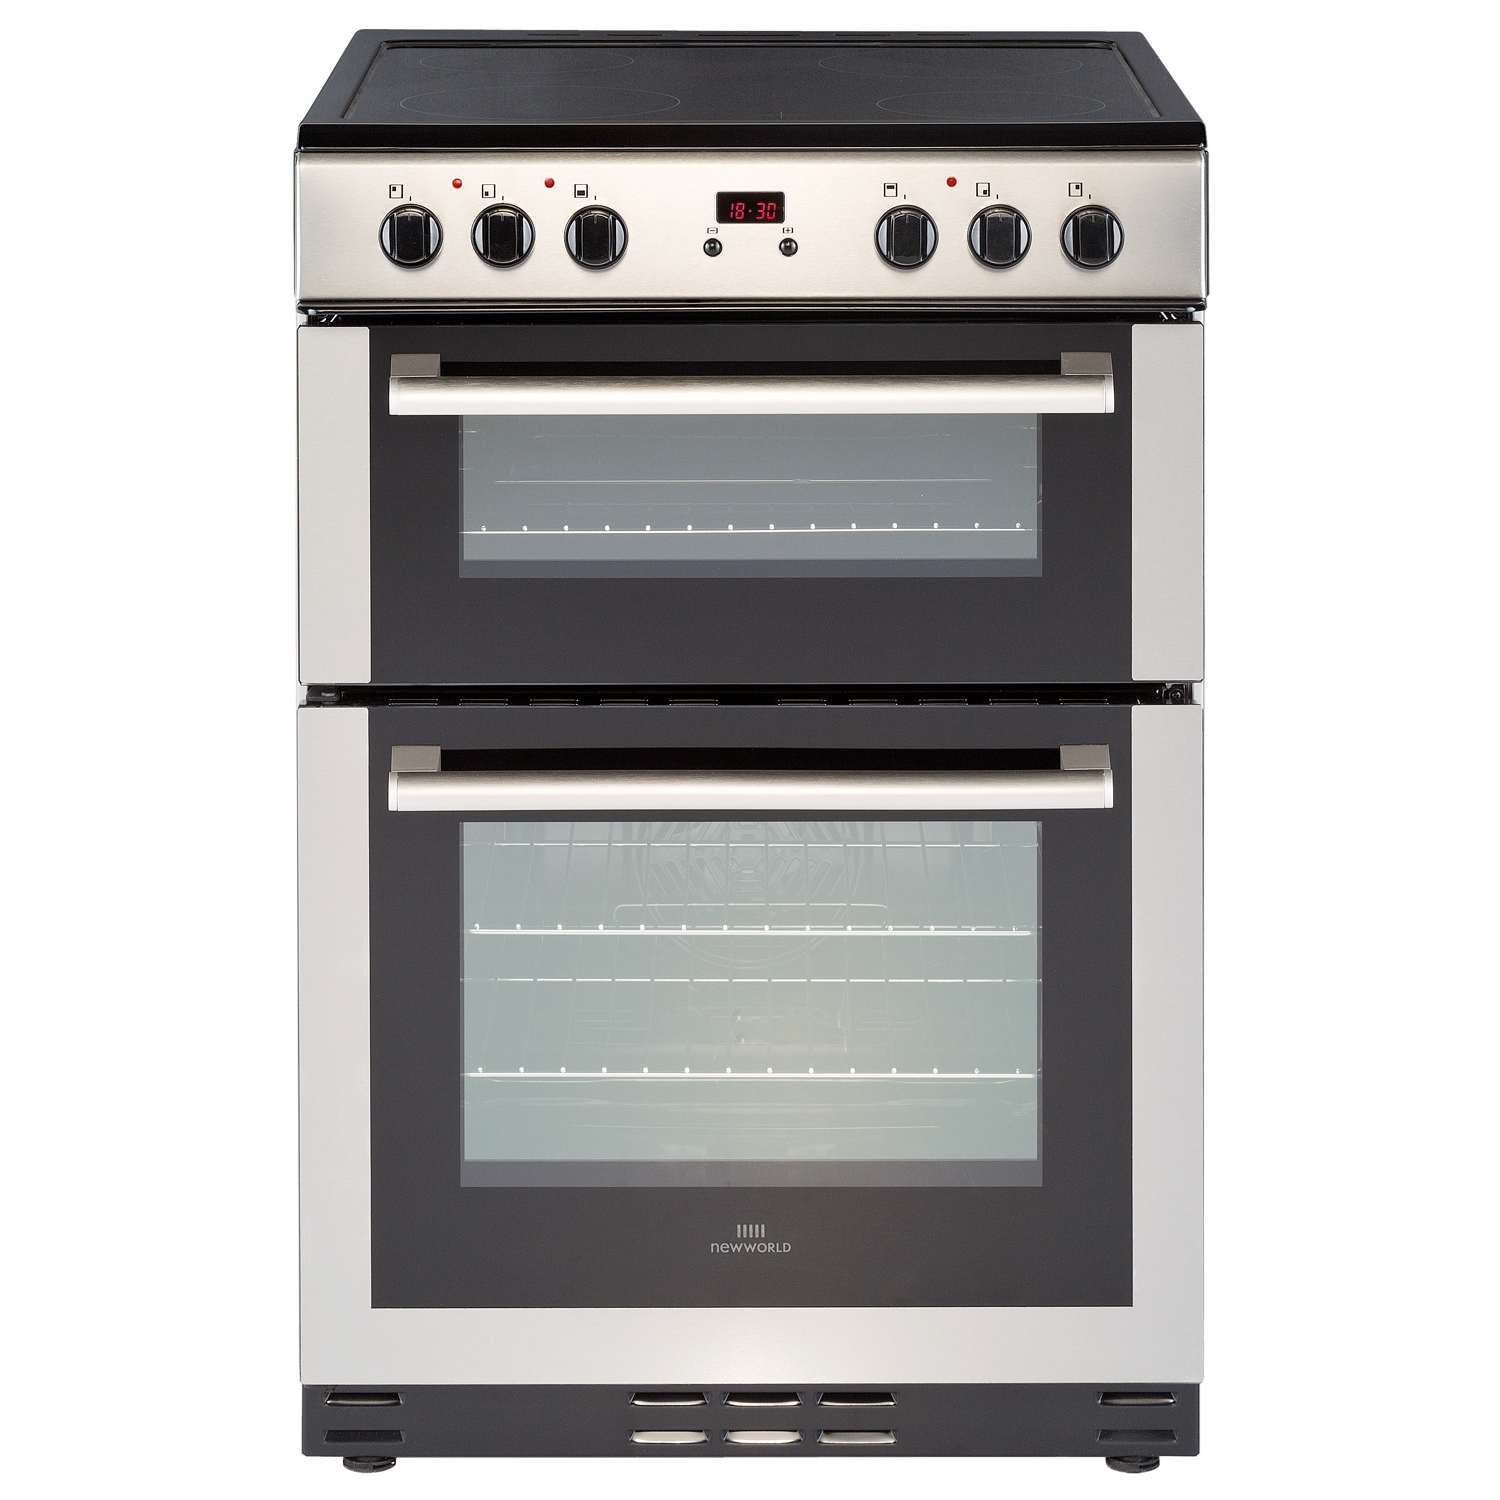 new world nw60edomc 60cm double oven electric ceramic cooker in rh ebay co uk new world vision gas cooker manual new world 55thlg gas cooker manual